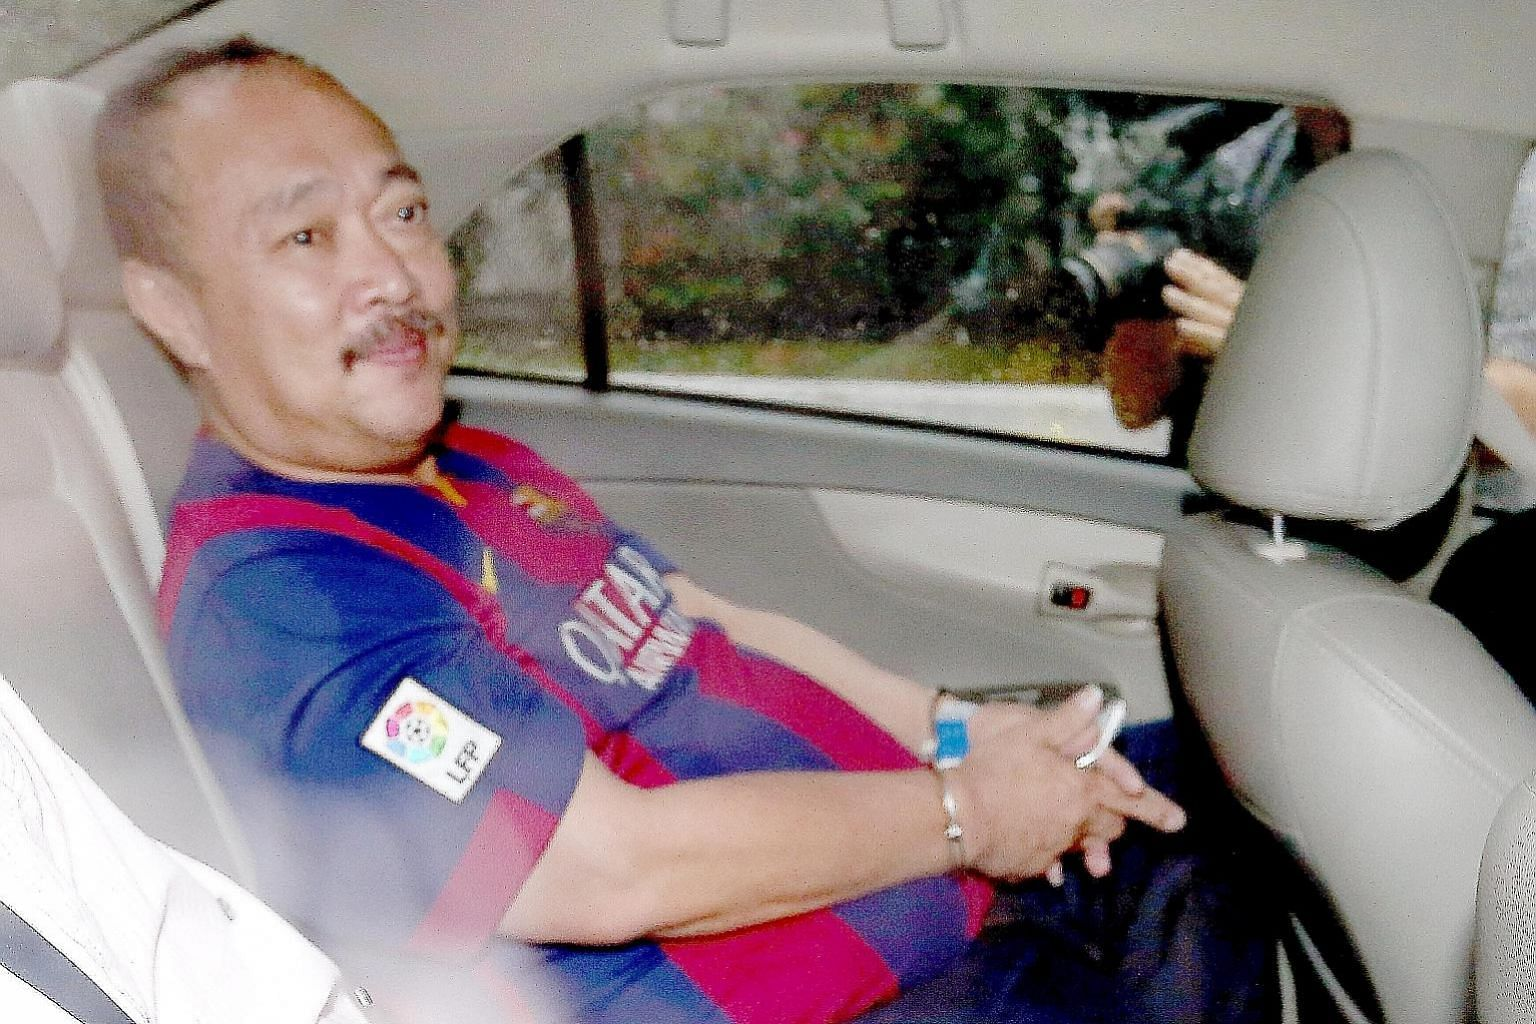 Toh Hock Thiam was jailed for seven years and four months. He was found out only a week after incident.